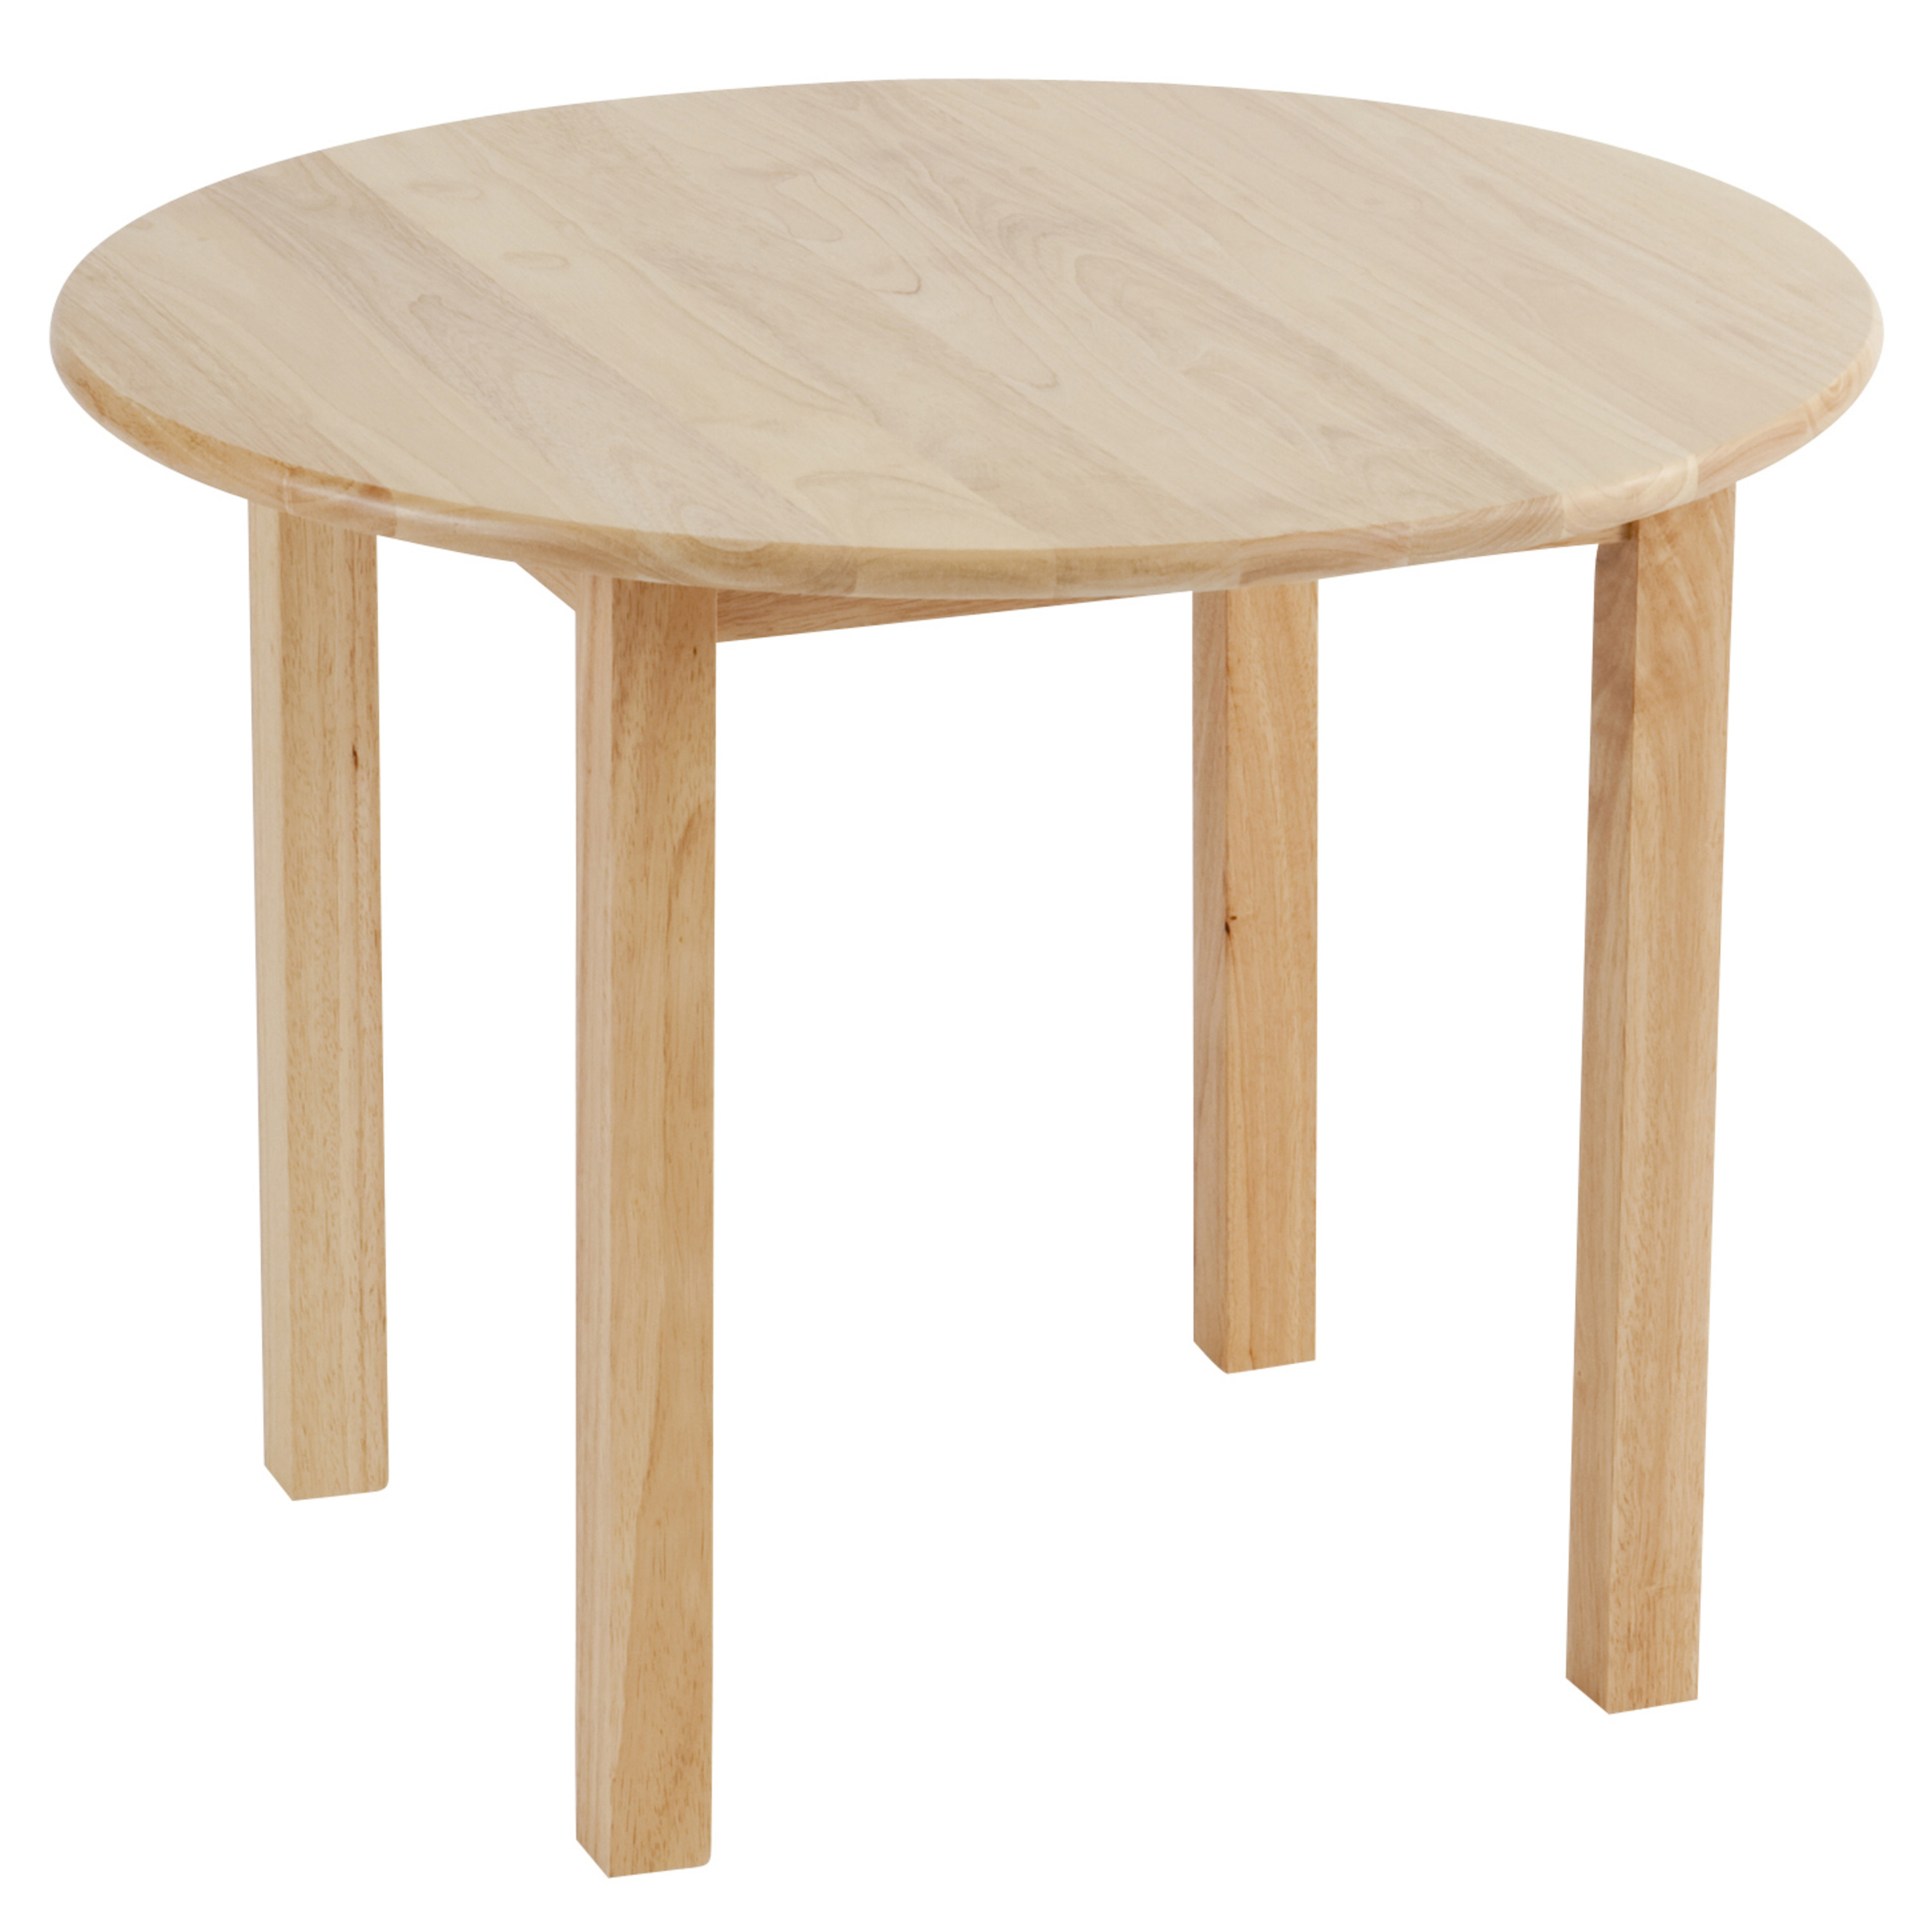 30in Round Hardwood Table with 22in Legs